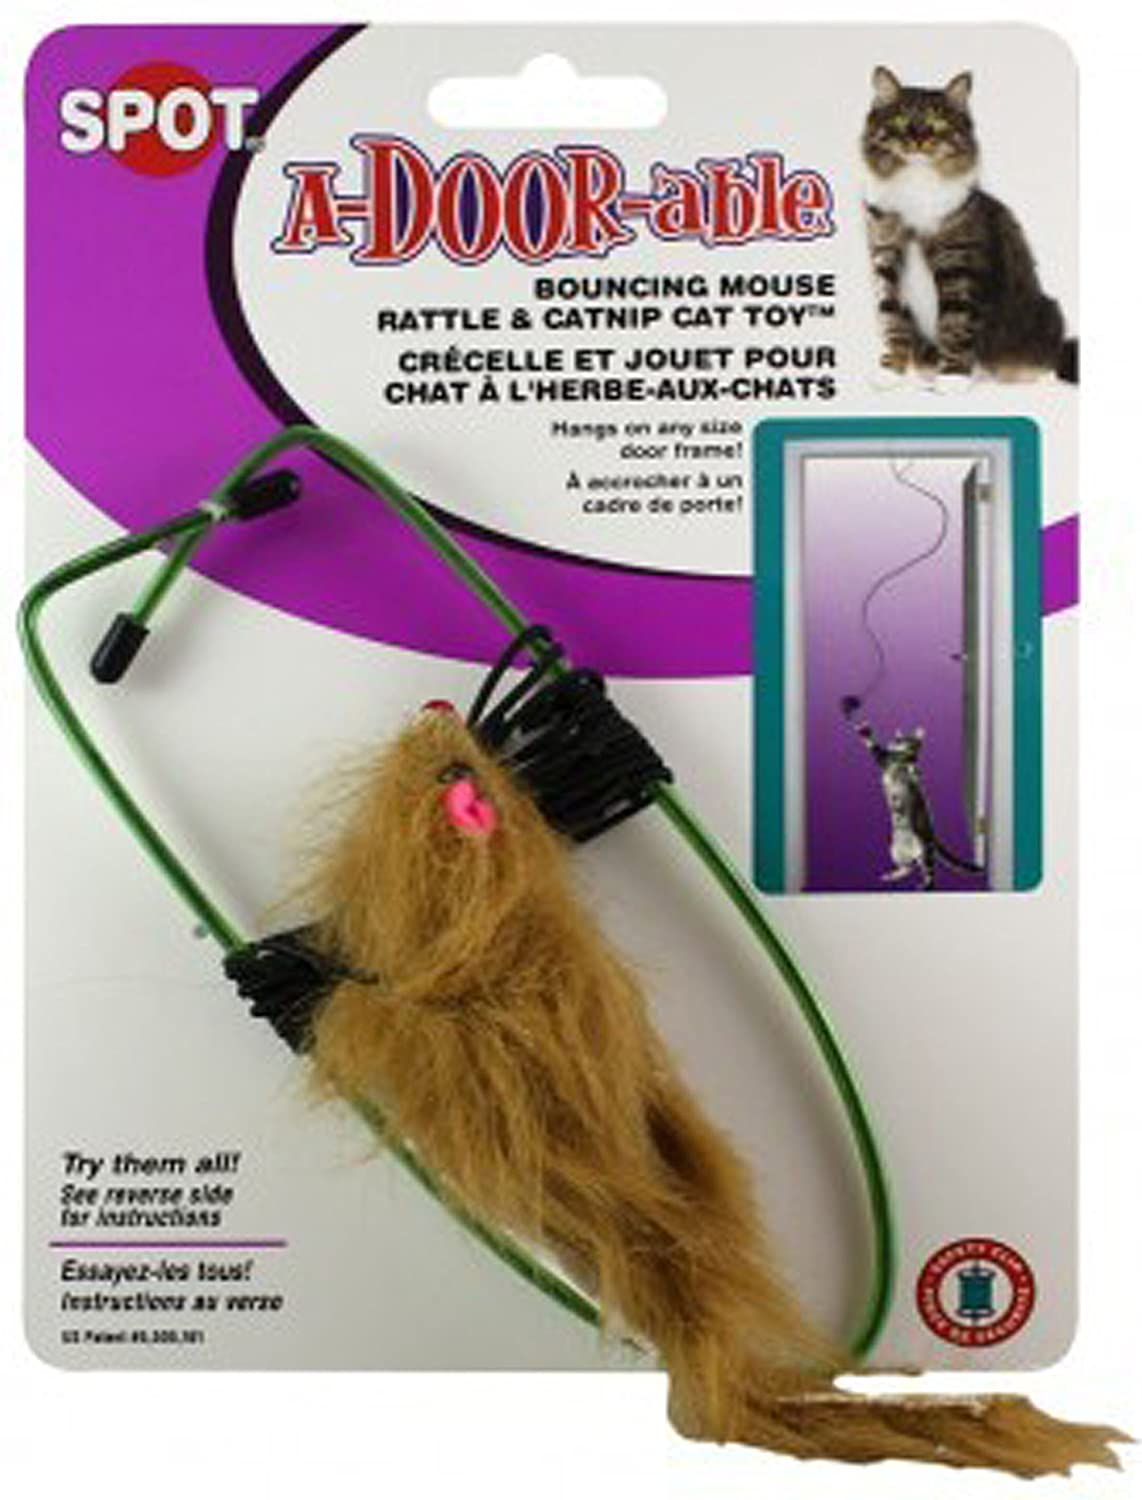 A-Door-Able Bouncing Mouse Cat Toy Size:Pack of 2 Spot